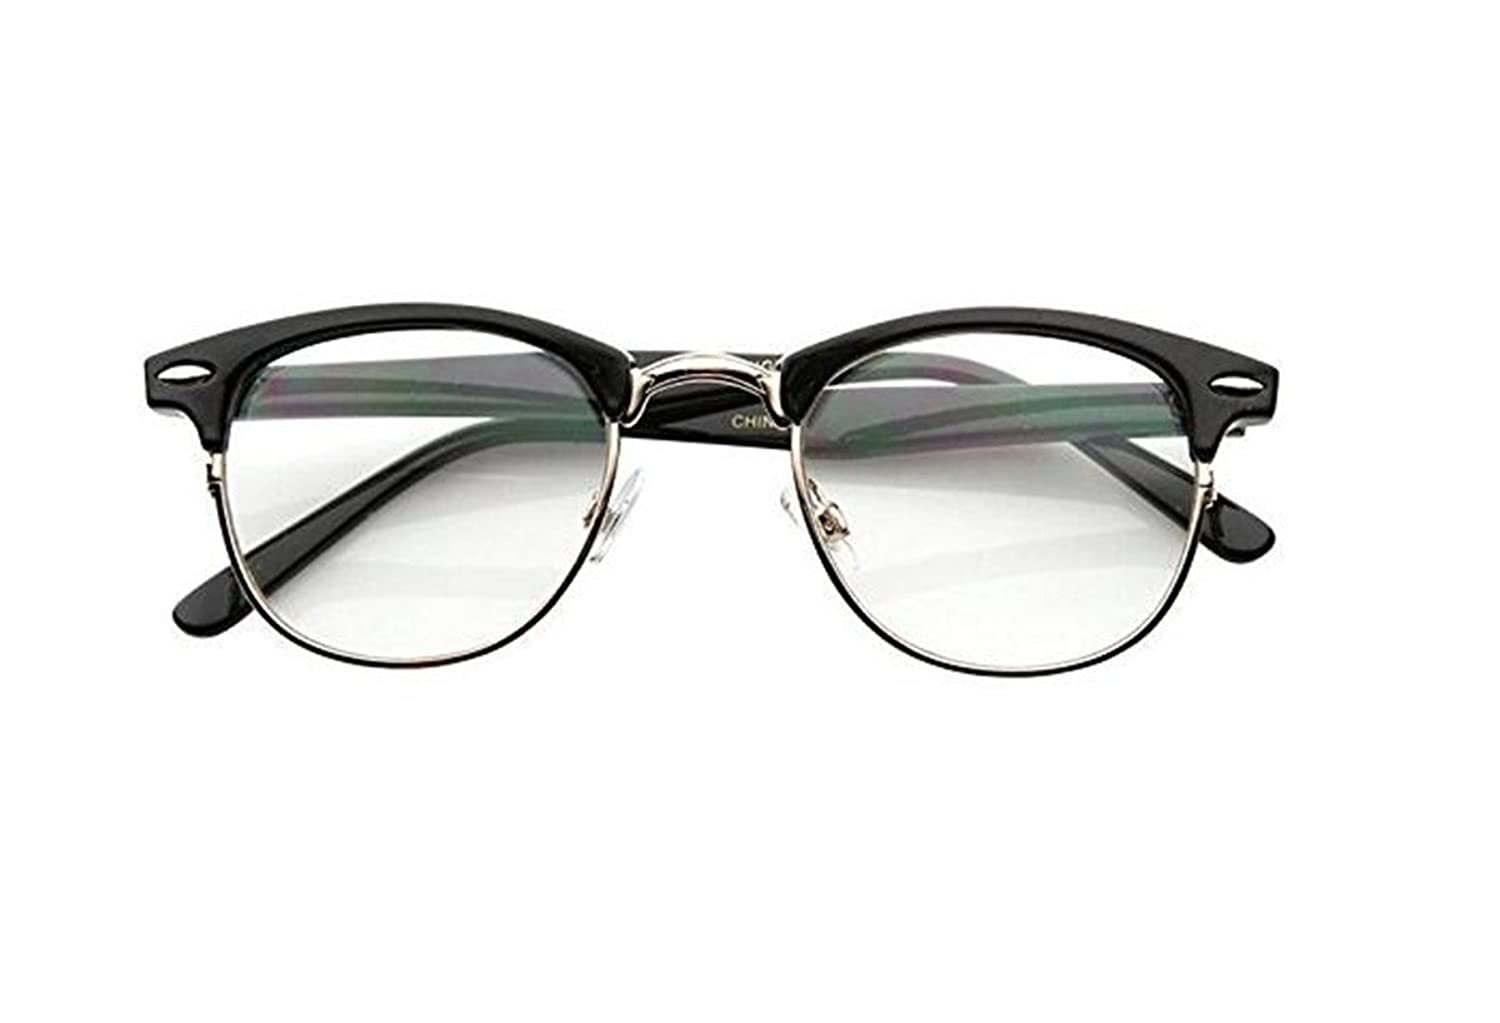 Amazon.com: Malcolm X Horn Rimmed Glasses Frames Black Silver ...